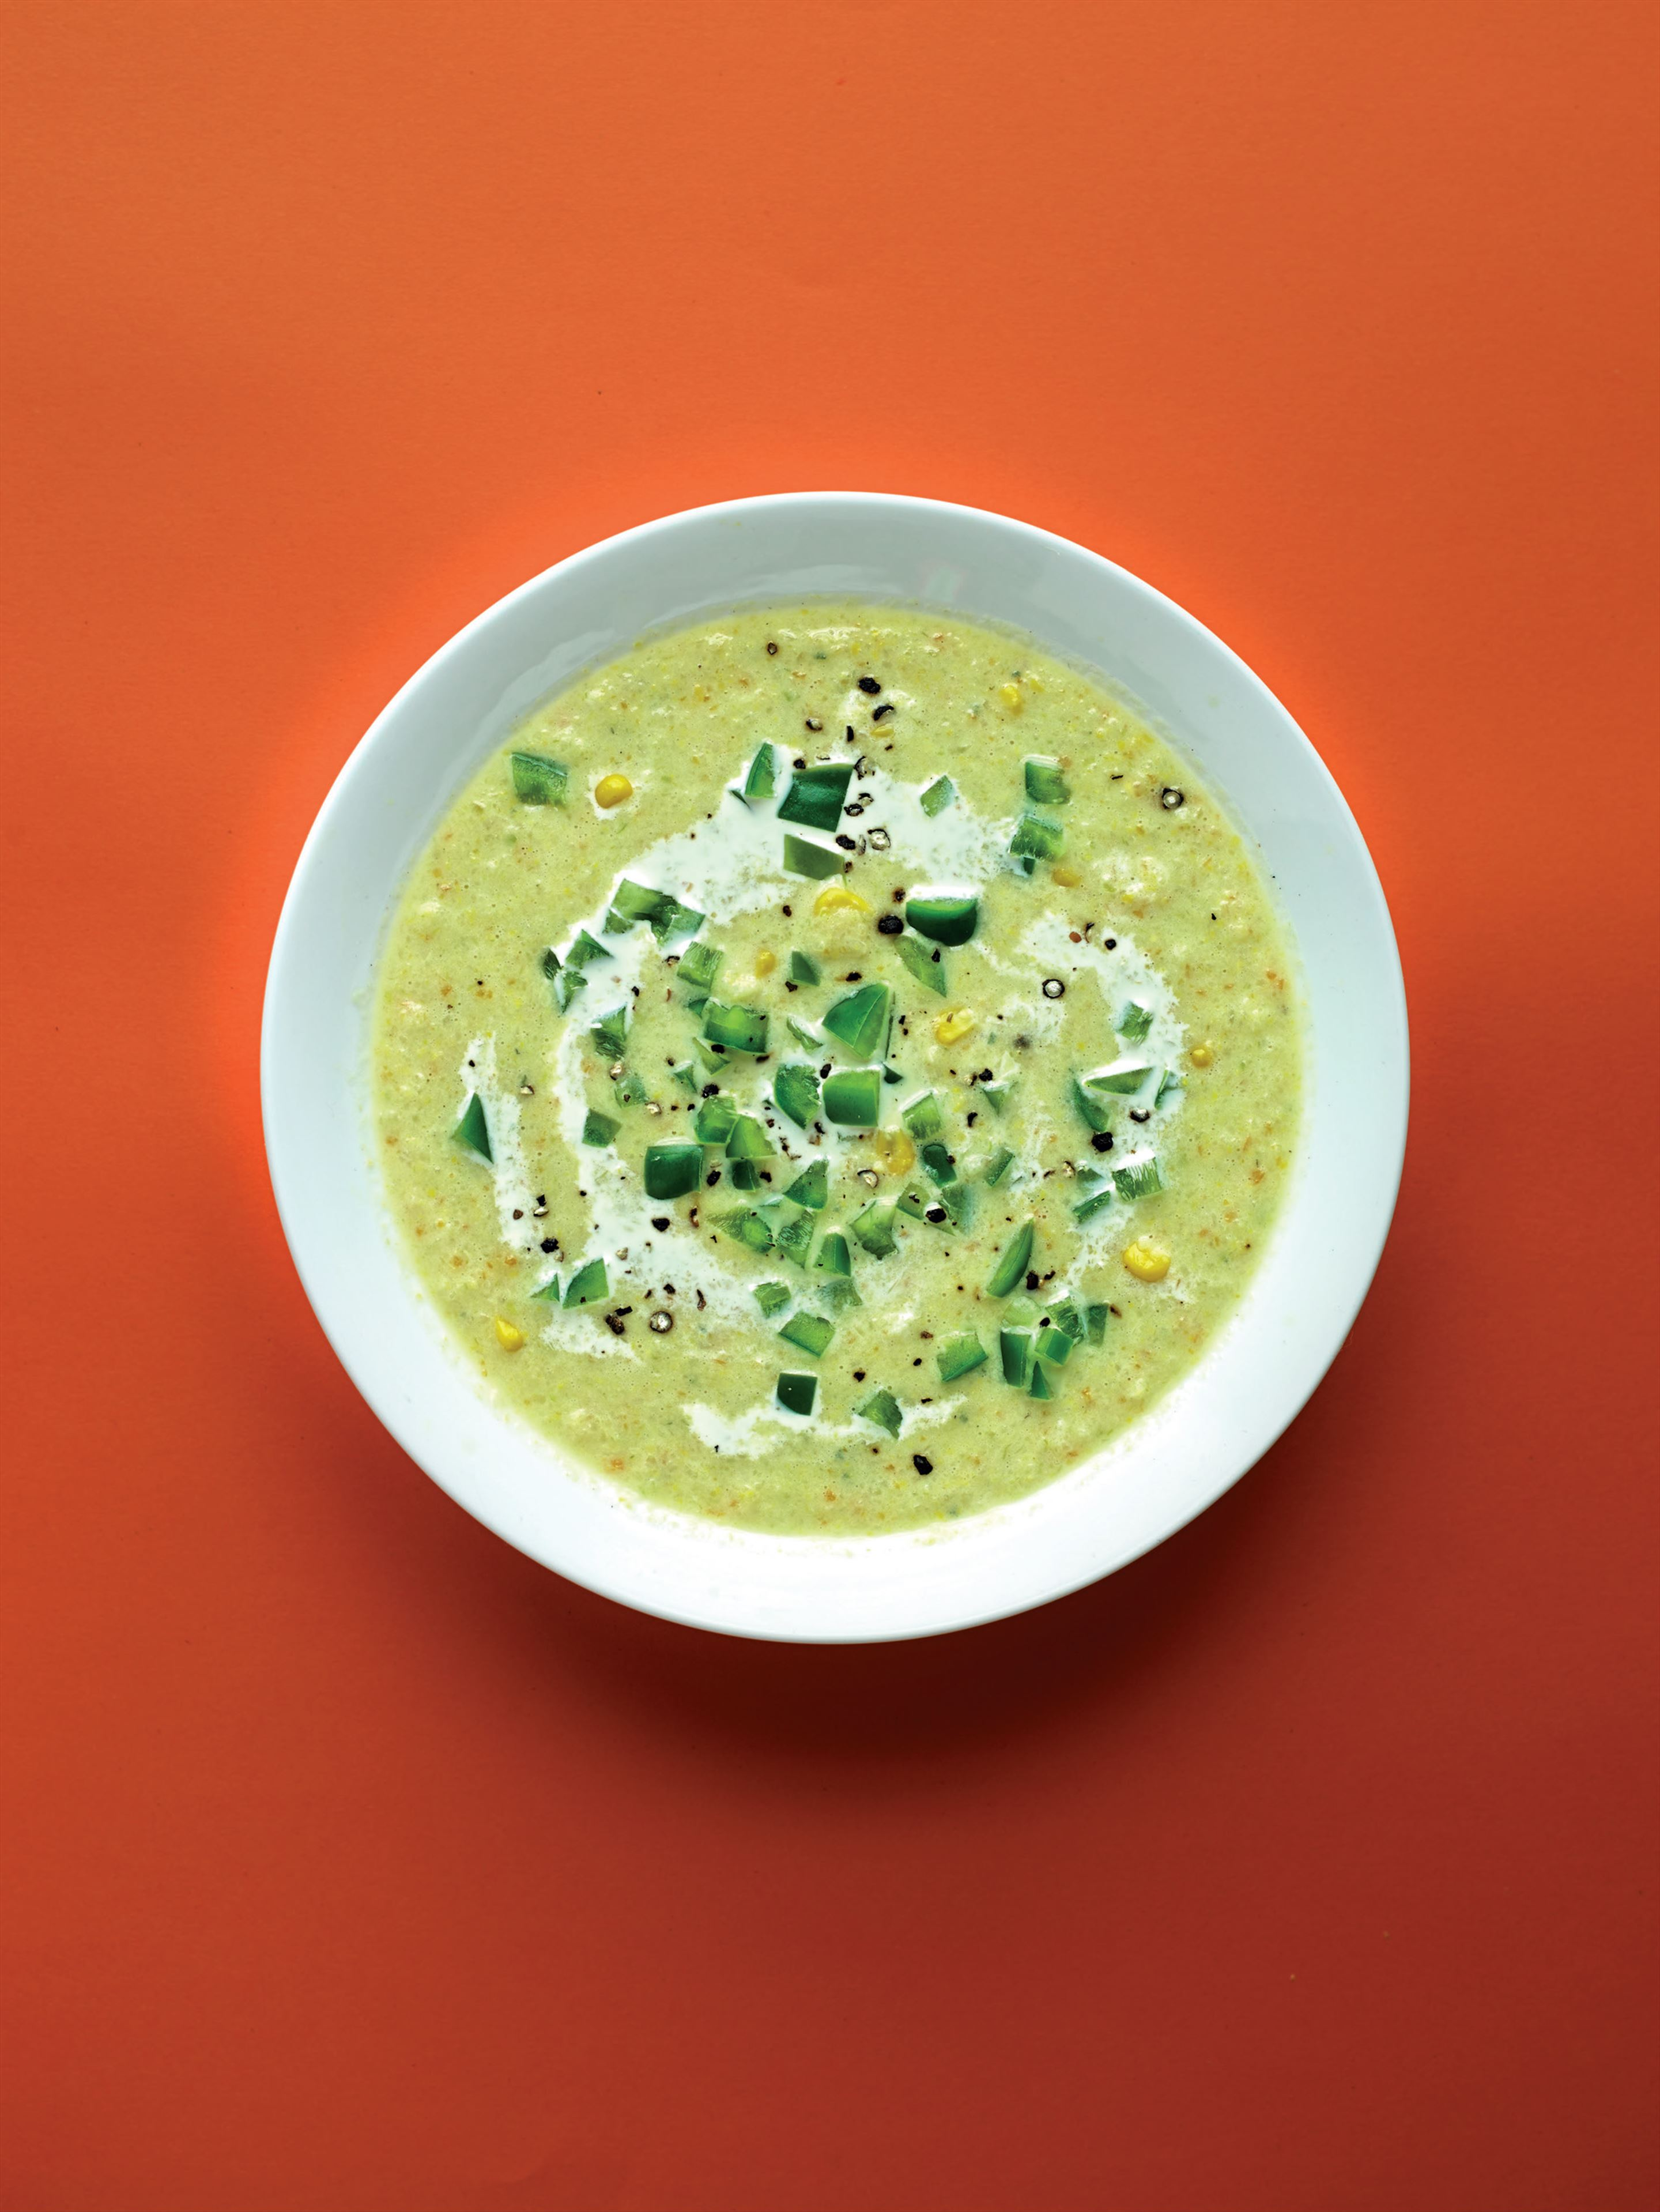 Corn chowder with green peppers